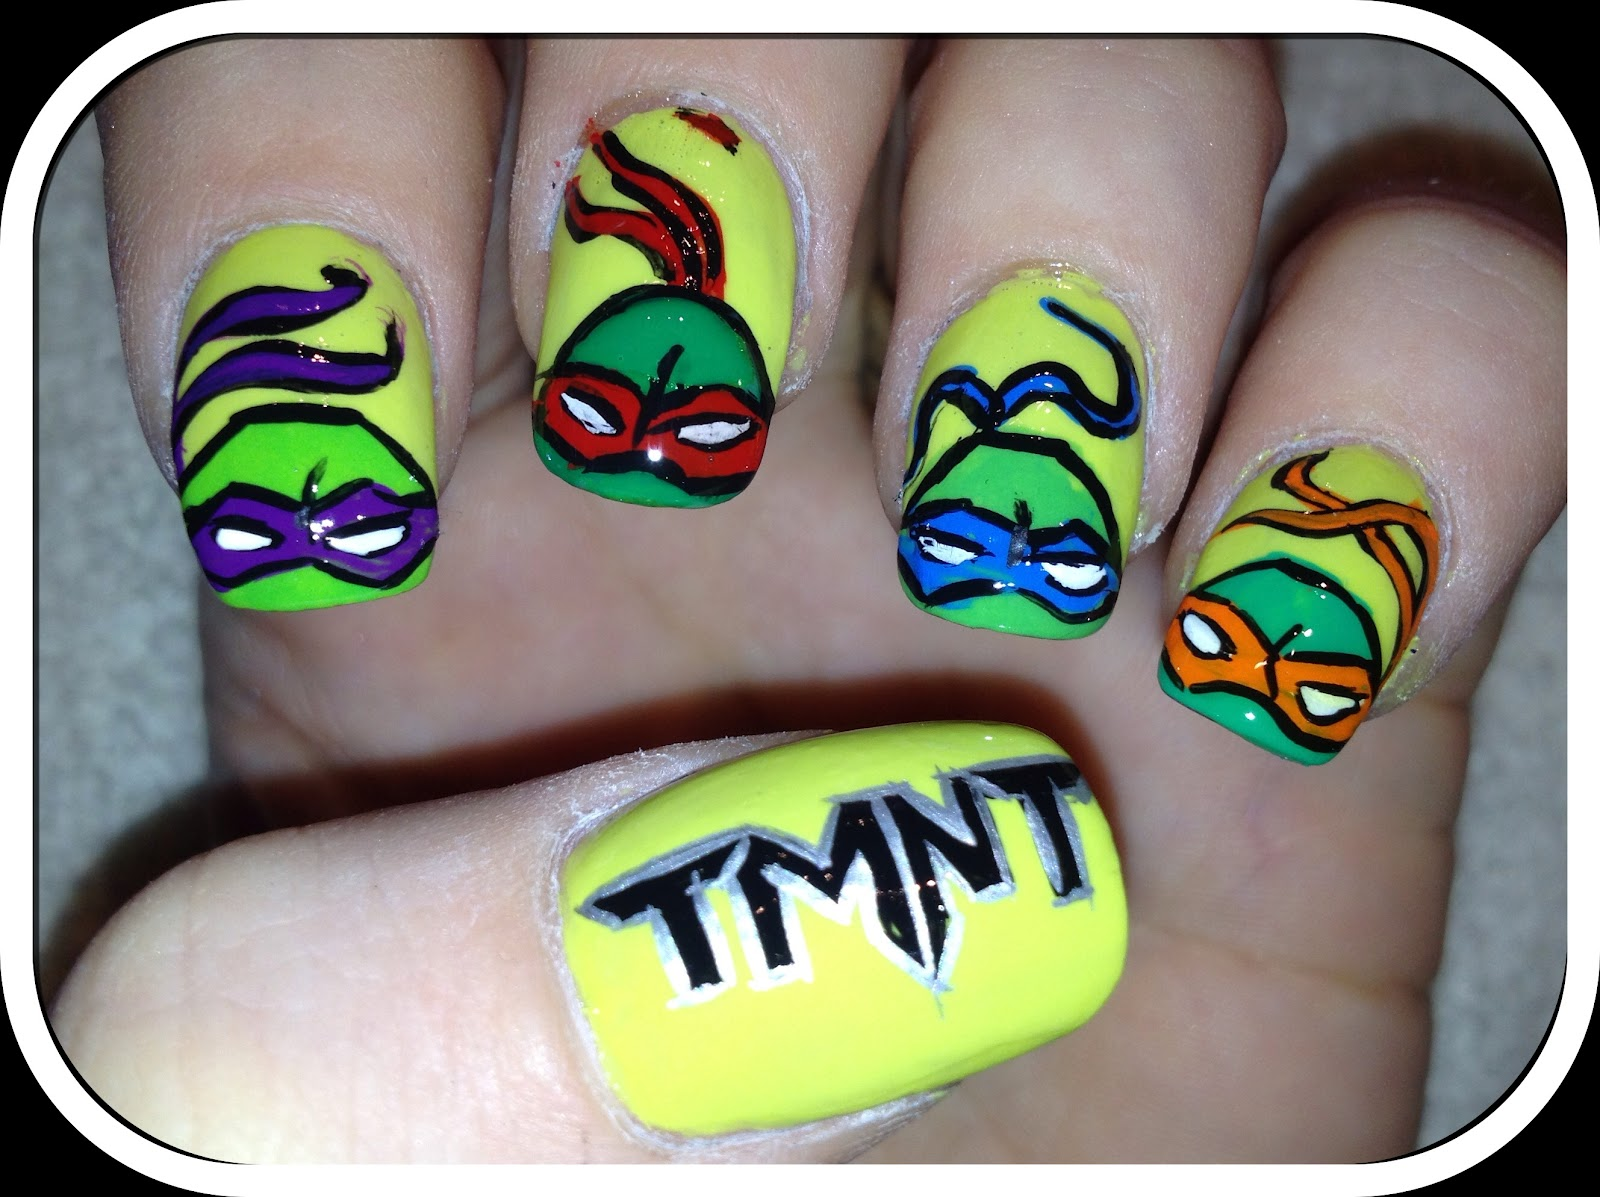 Nailed Daily: Day 109 - Ninja Turtles